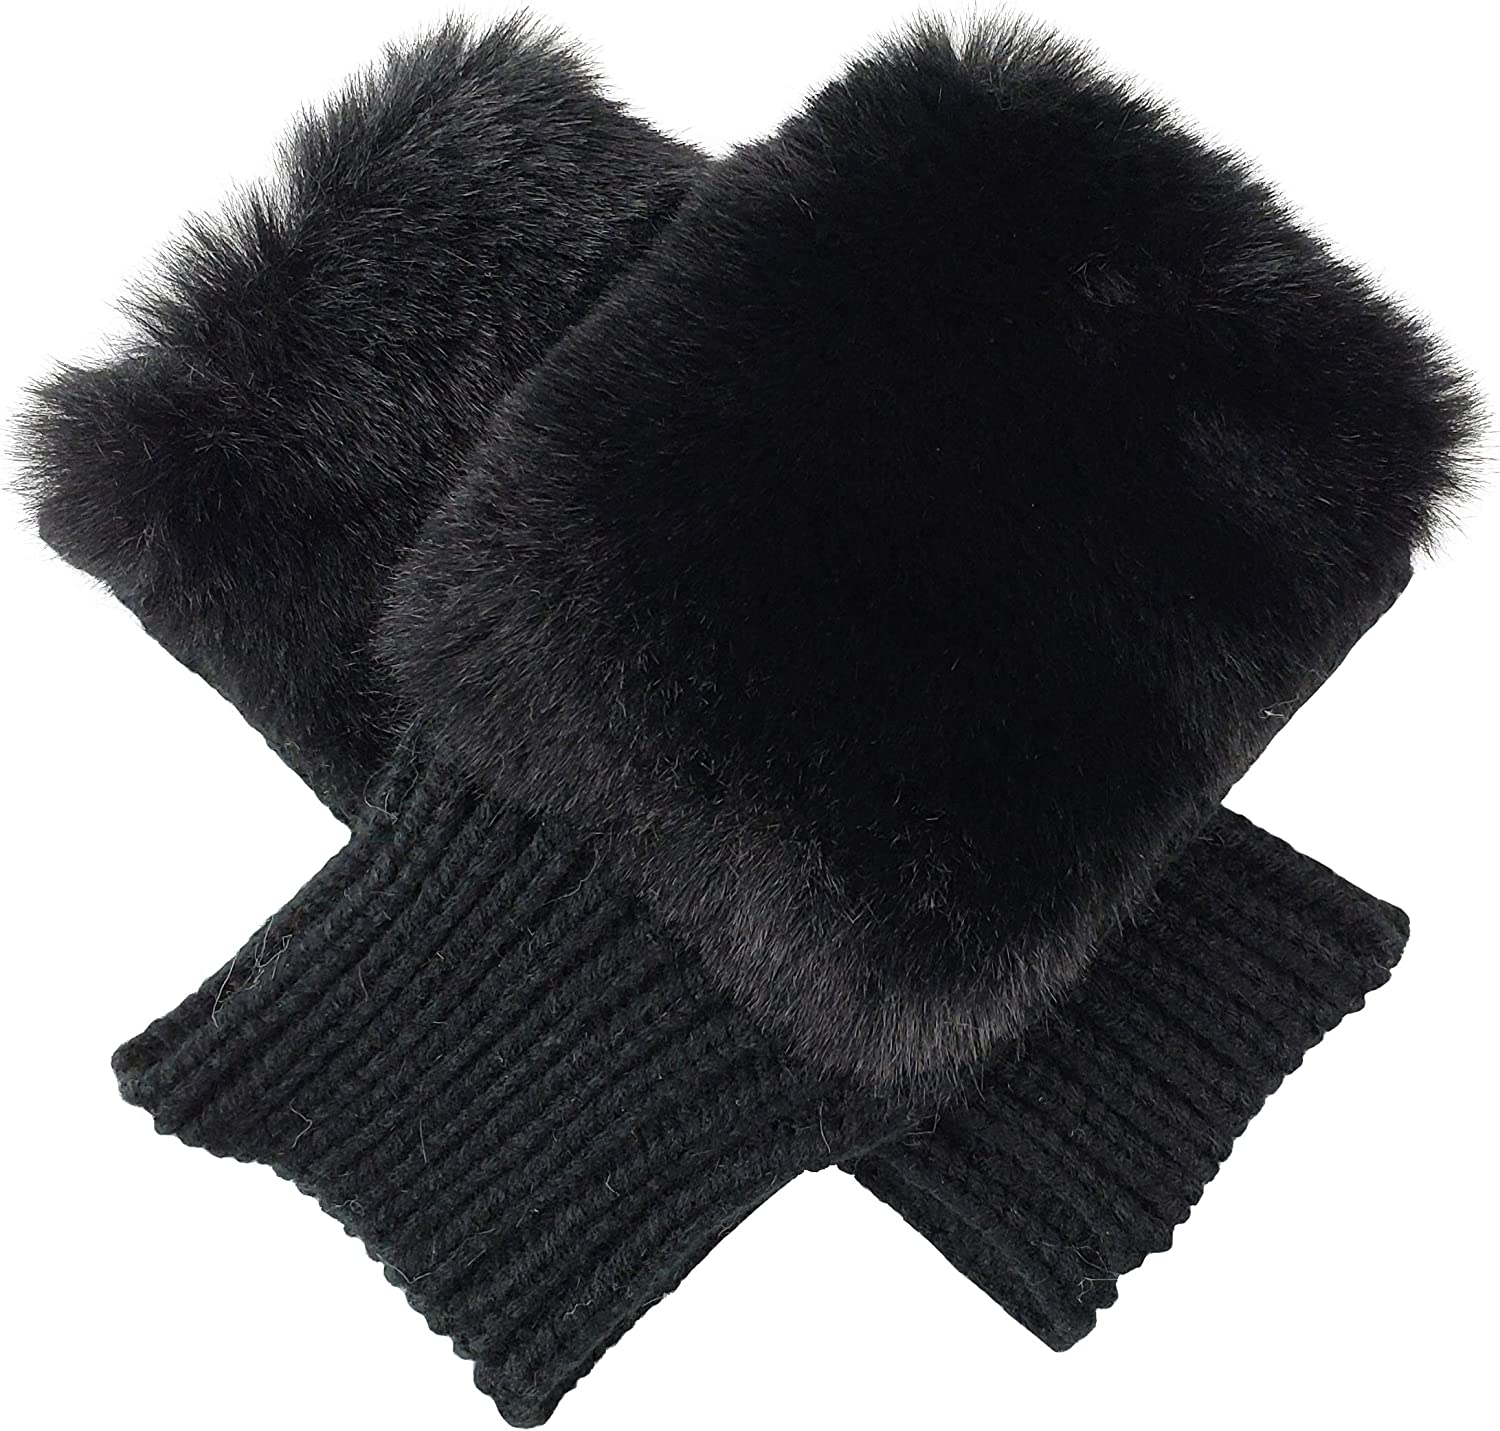 Bruceriver Womens Winter Warm Knitted Fingerless unlined Gloves with faux fur